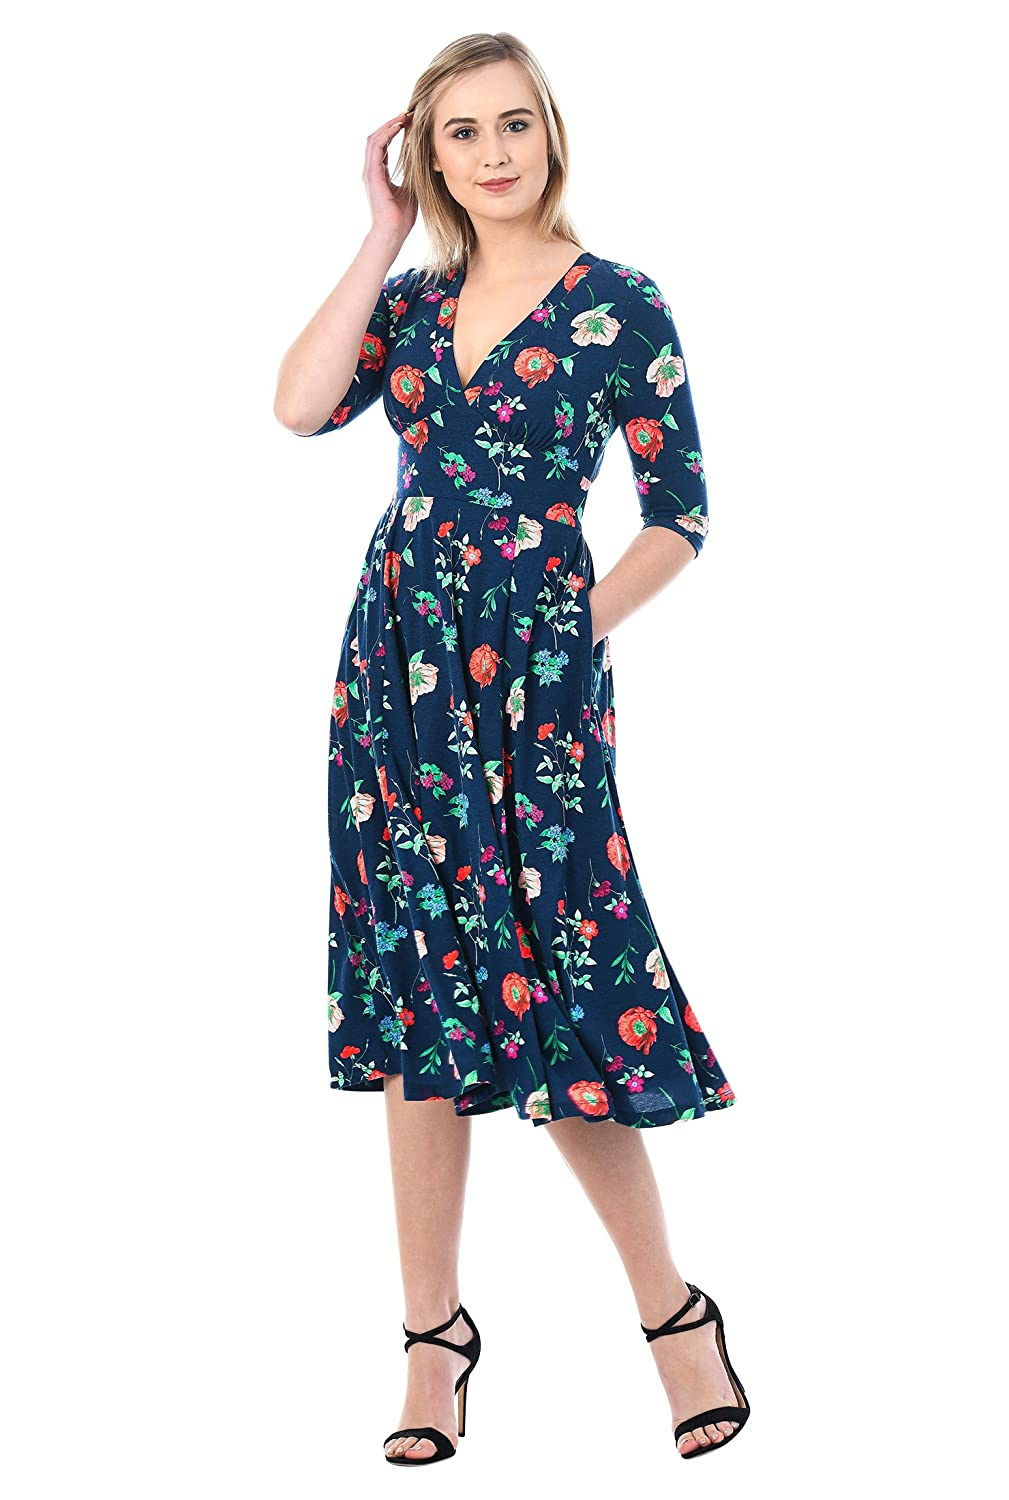 1940s Style Dresses | 40s Dress, Swing Dress eShakti Womens Banded Empire Floral Cotton Knit Dress $59.95 AT vintagedancer.com